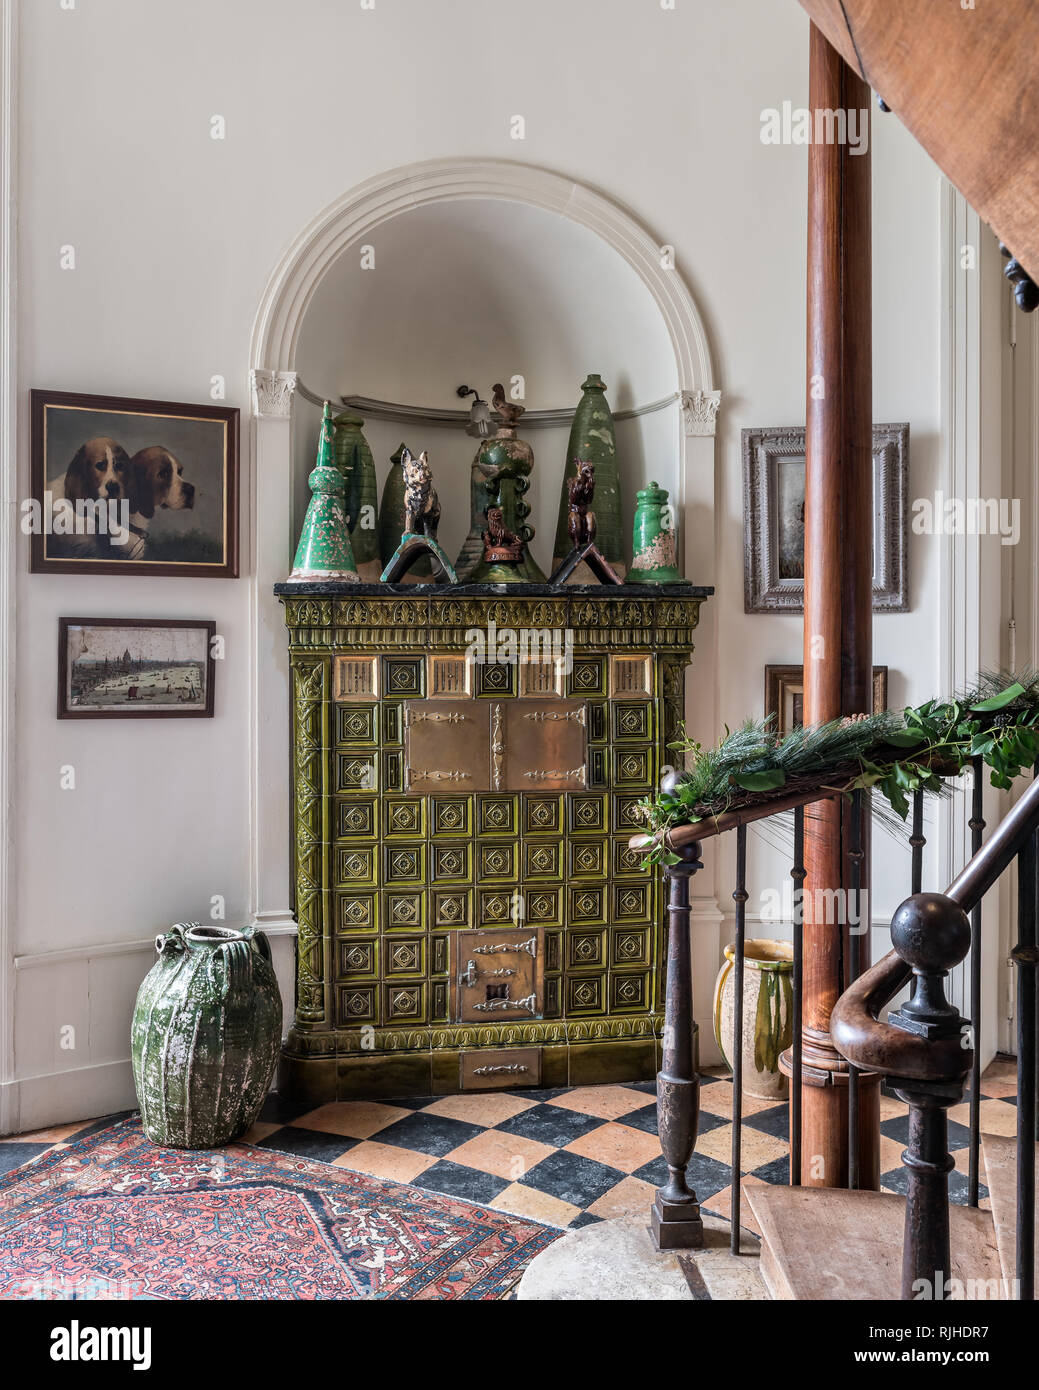 Green glazed stove in the hallway with original black and terracotta tiles - Stock Image